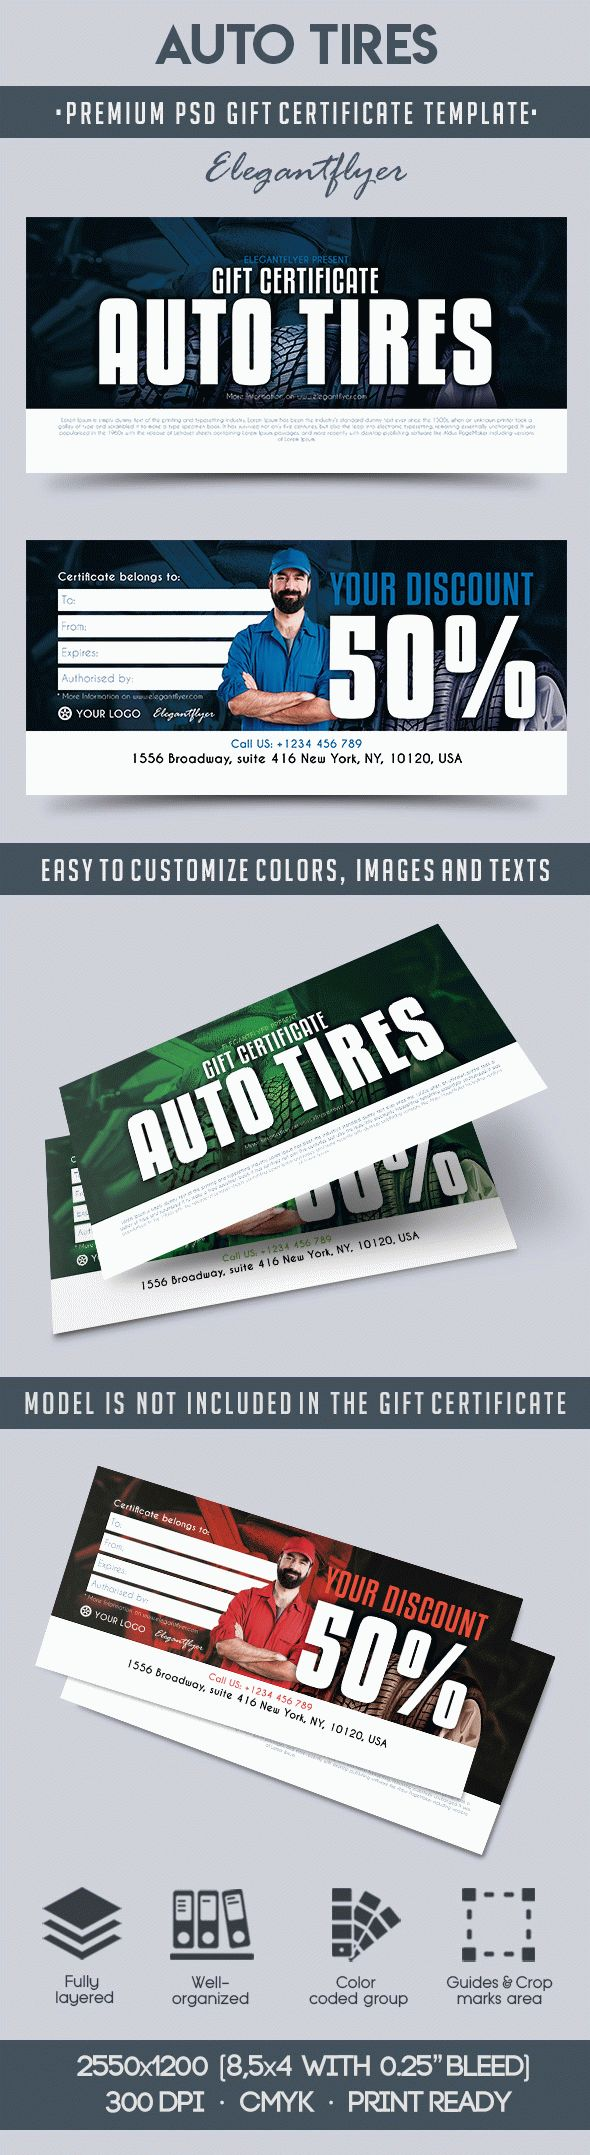 Auto Tires – Premium Gift Certificate PSD Template